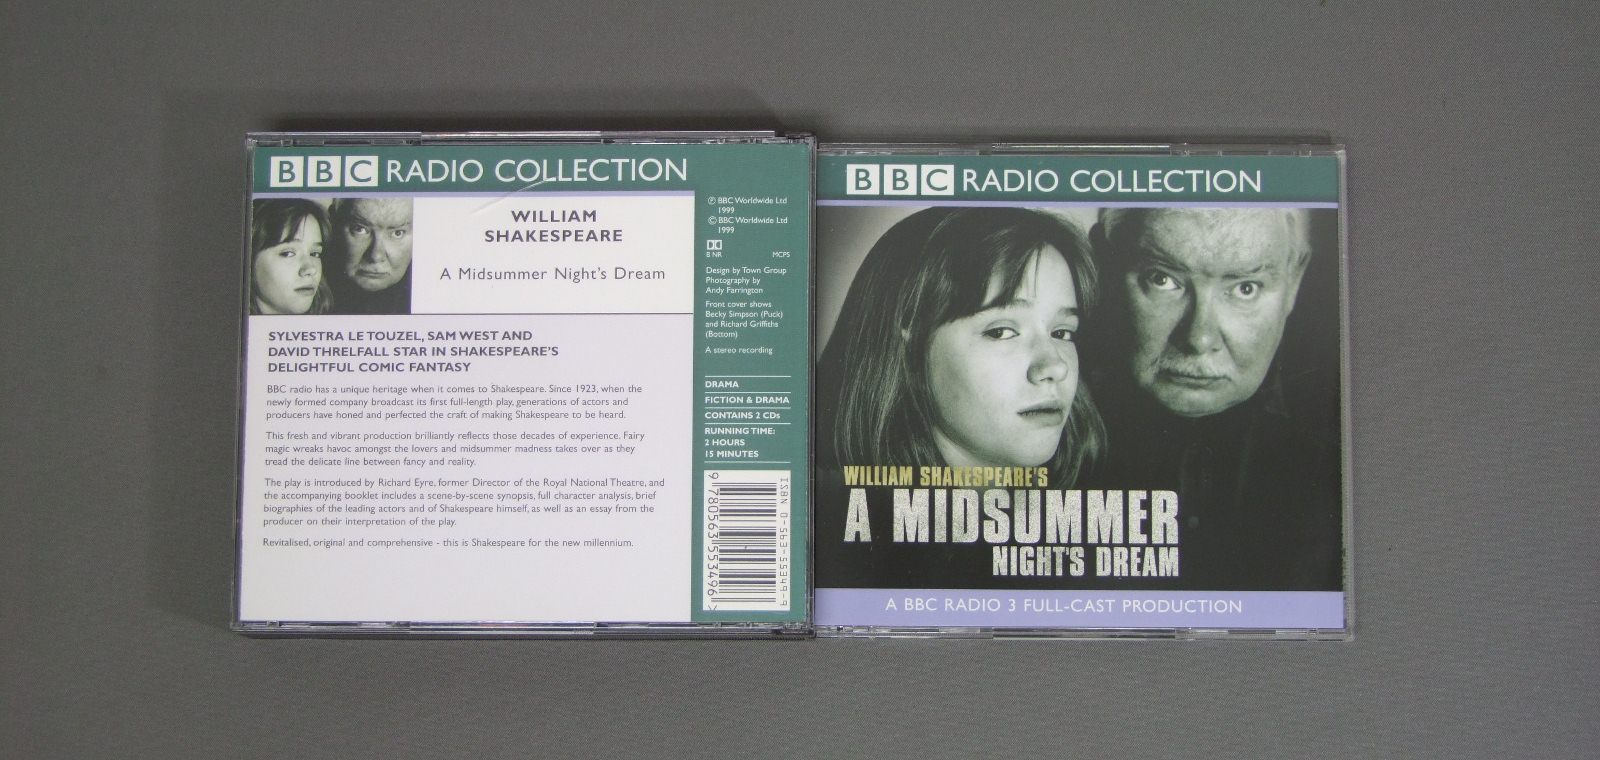 a comparison of midsummer nights dream and romeo and juliet Comparing a midsummer night's dream and romeo and juliet essay 1176 words | 5 pages from the rest as sharing a great deal in common specific, solid parallels can be drawn between shakespeare's plays a midsummer night's dream and romeo and juliet.